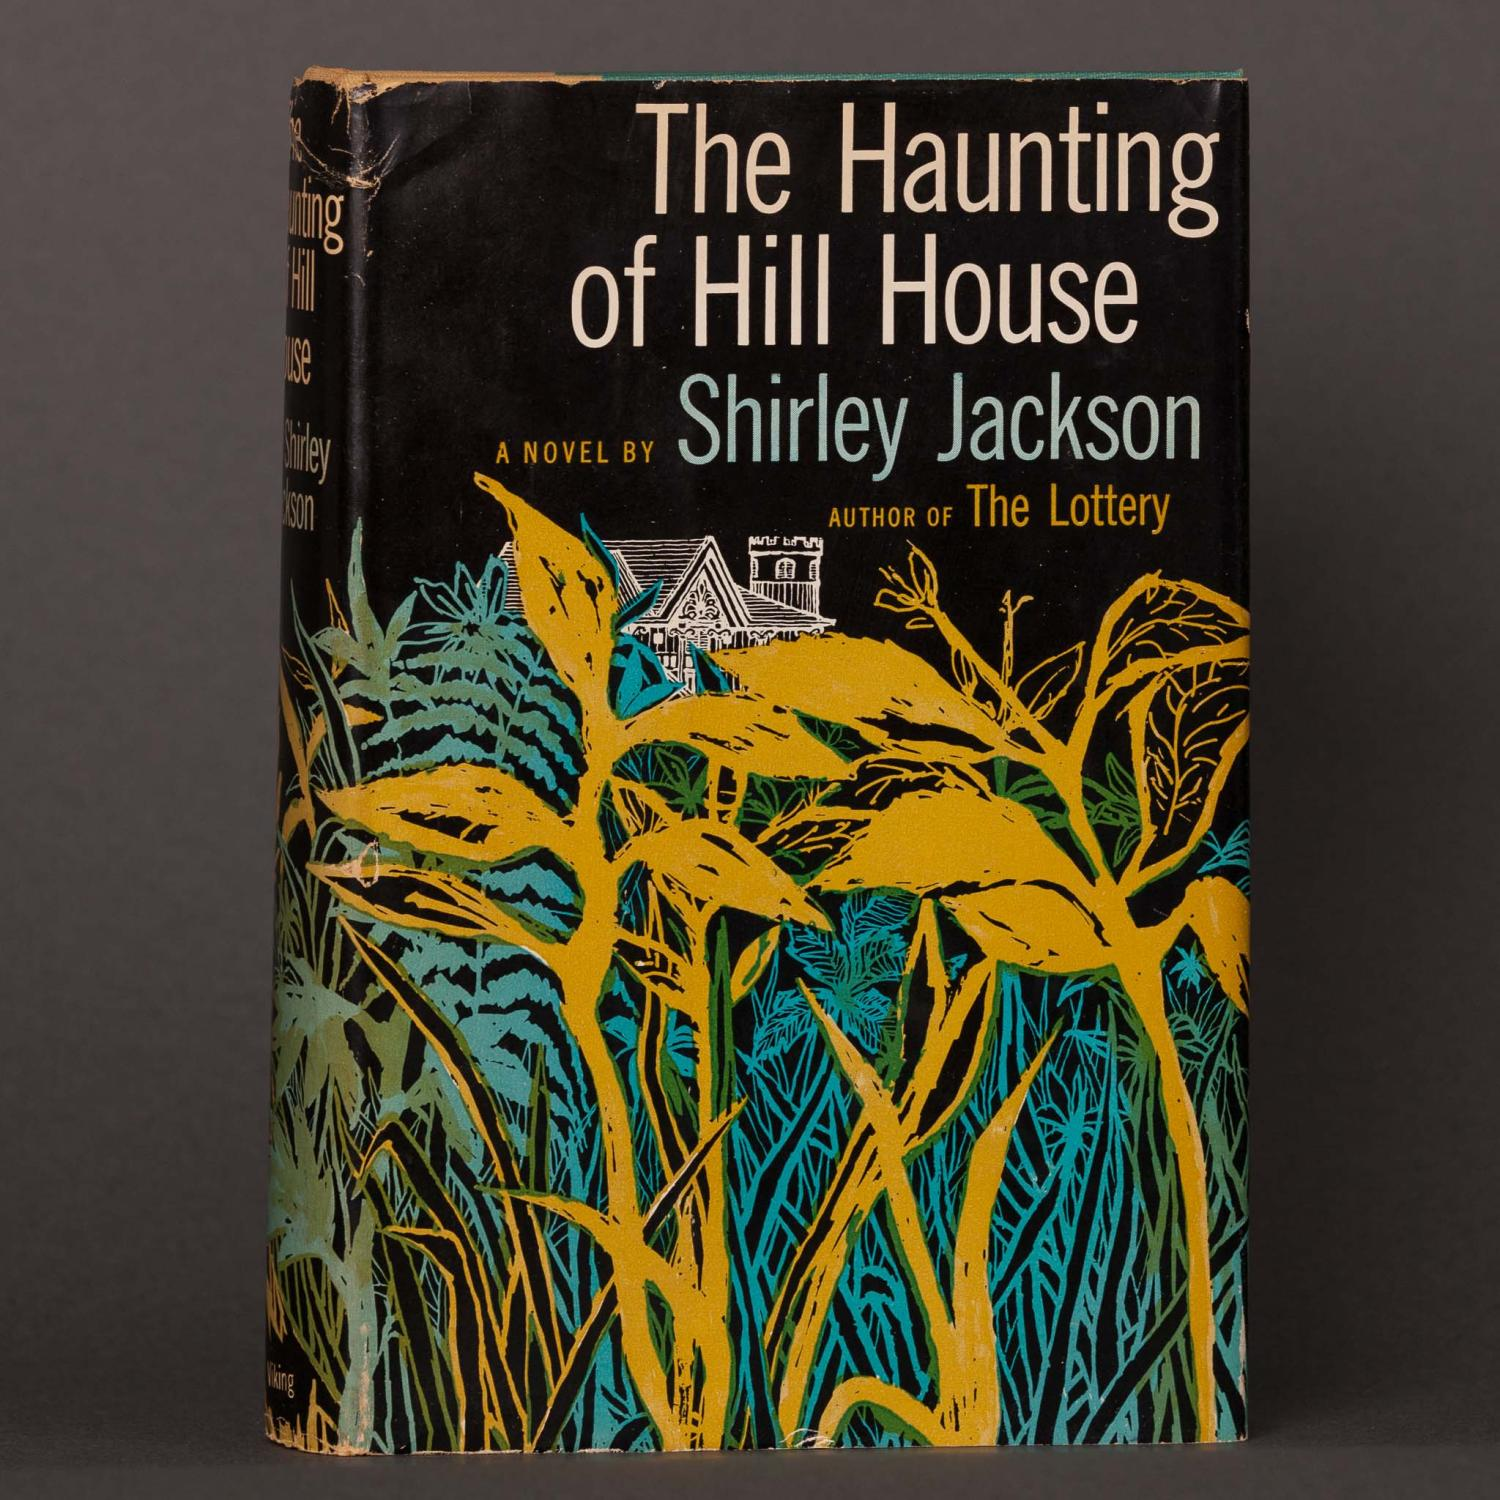 changing lives in shirley jacksons story haunting of hill house